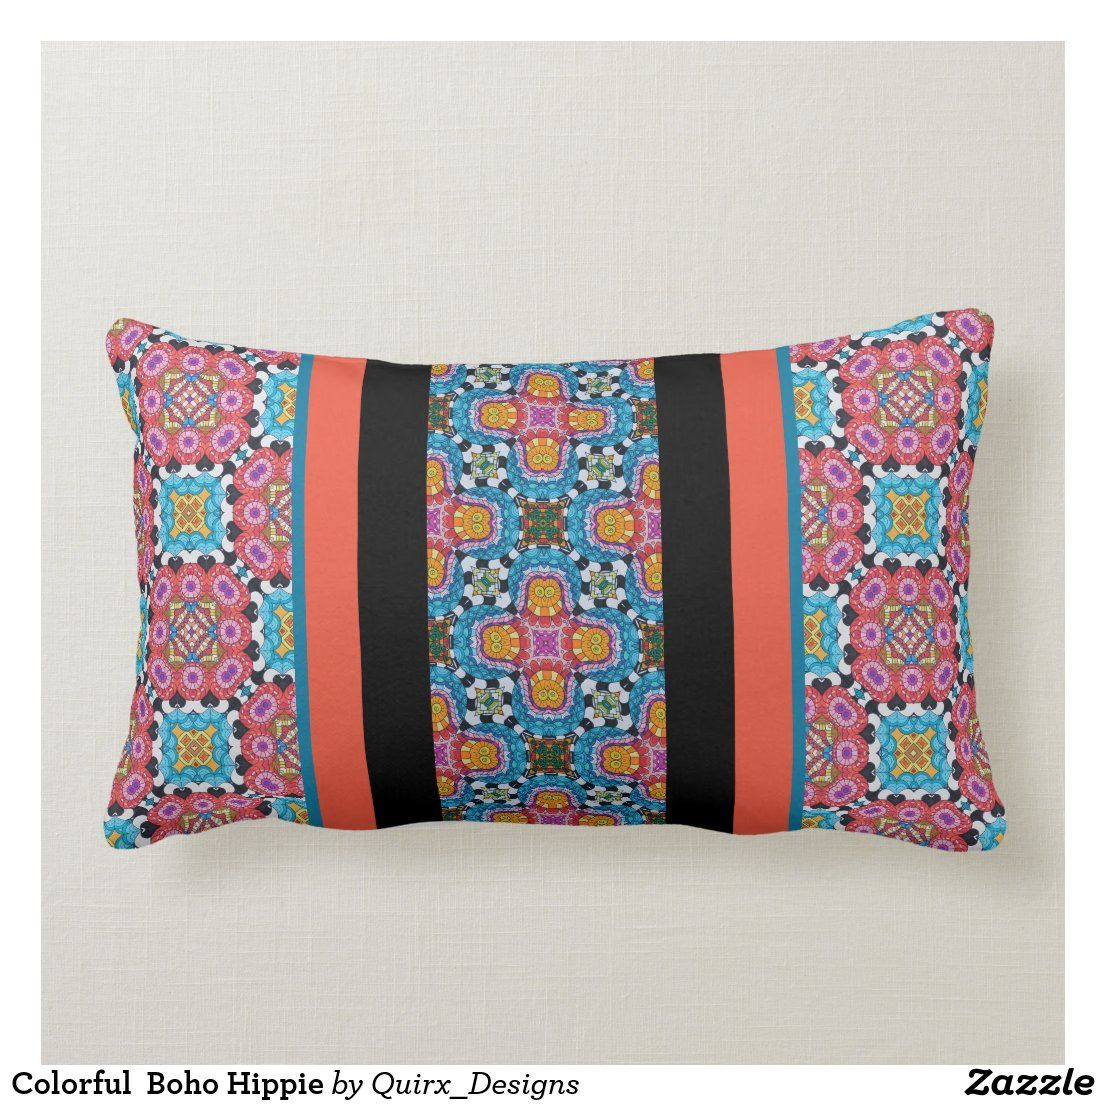 Colorful Boho Hippie Lumbar Pillow